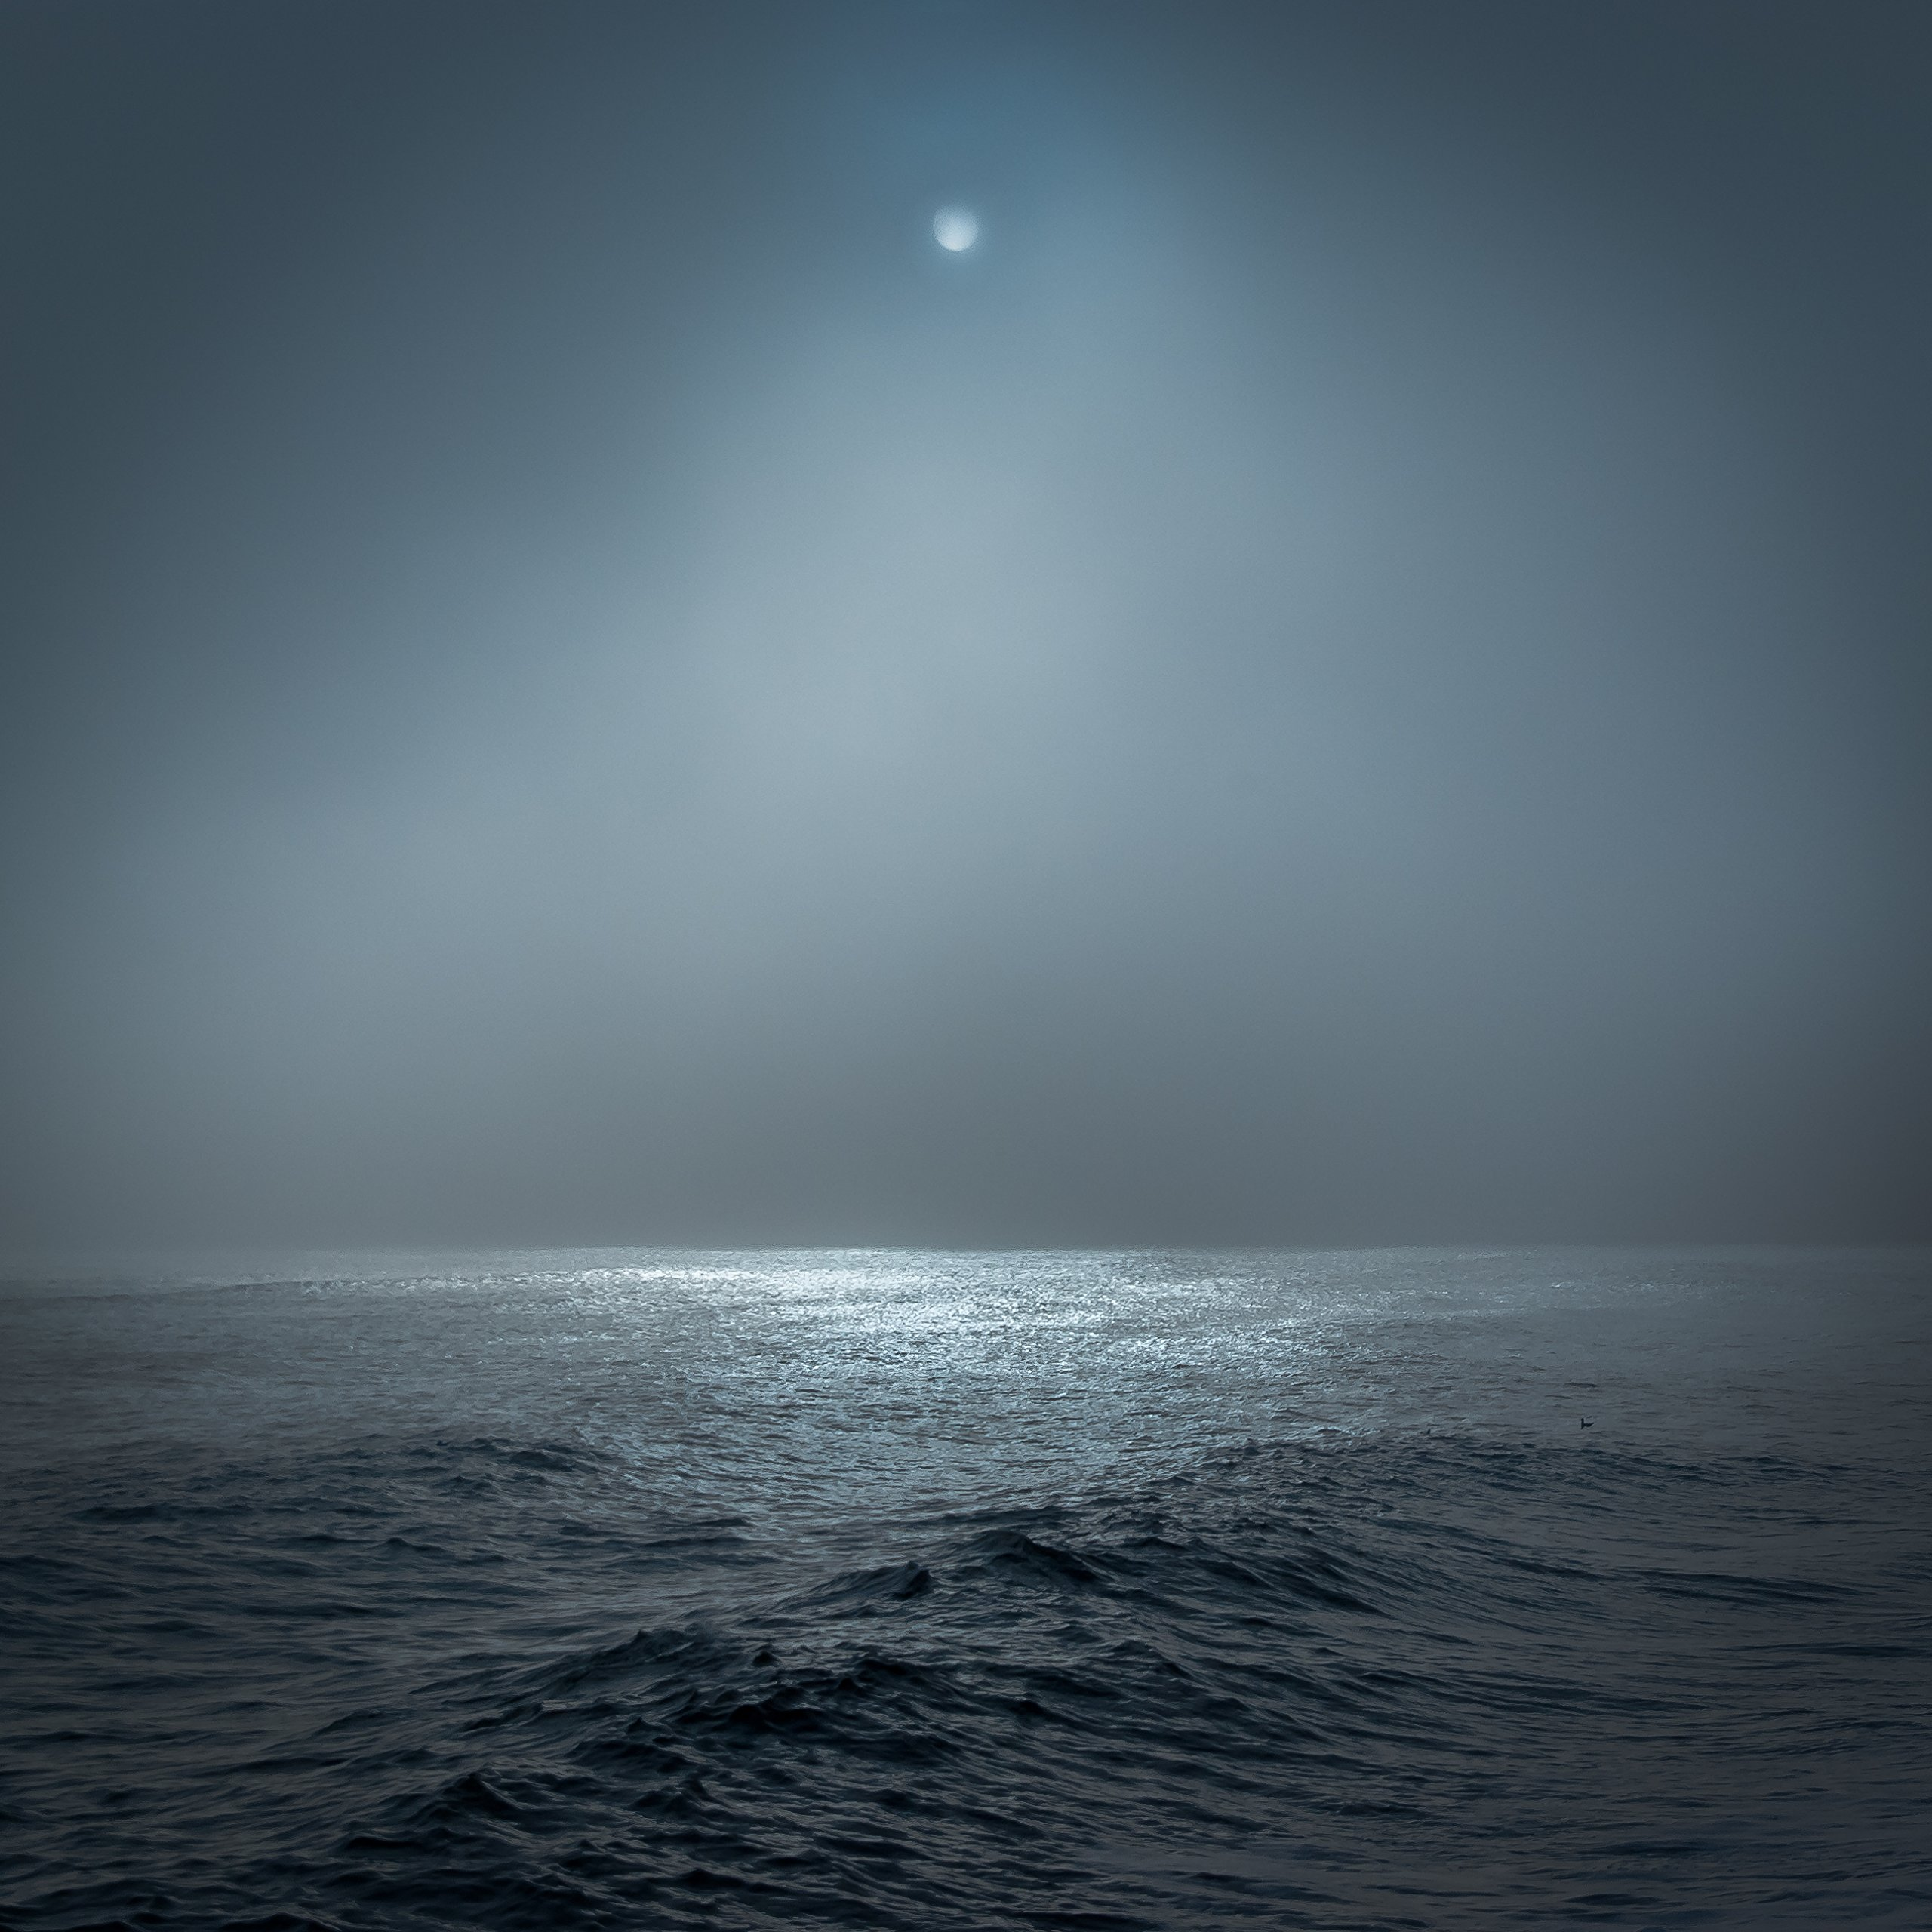 Blue Sea And Moon by